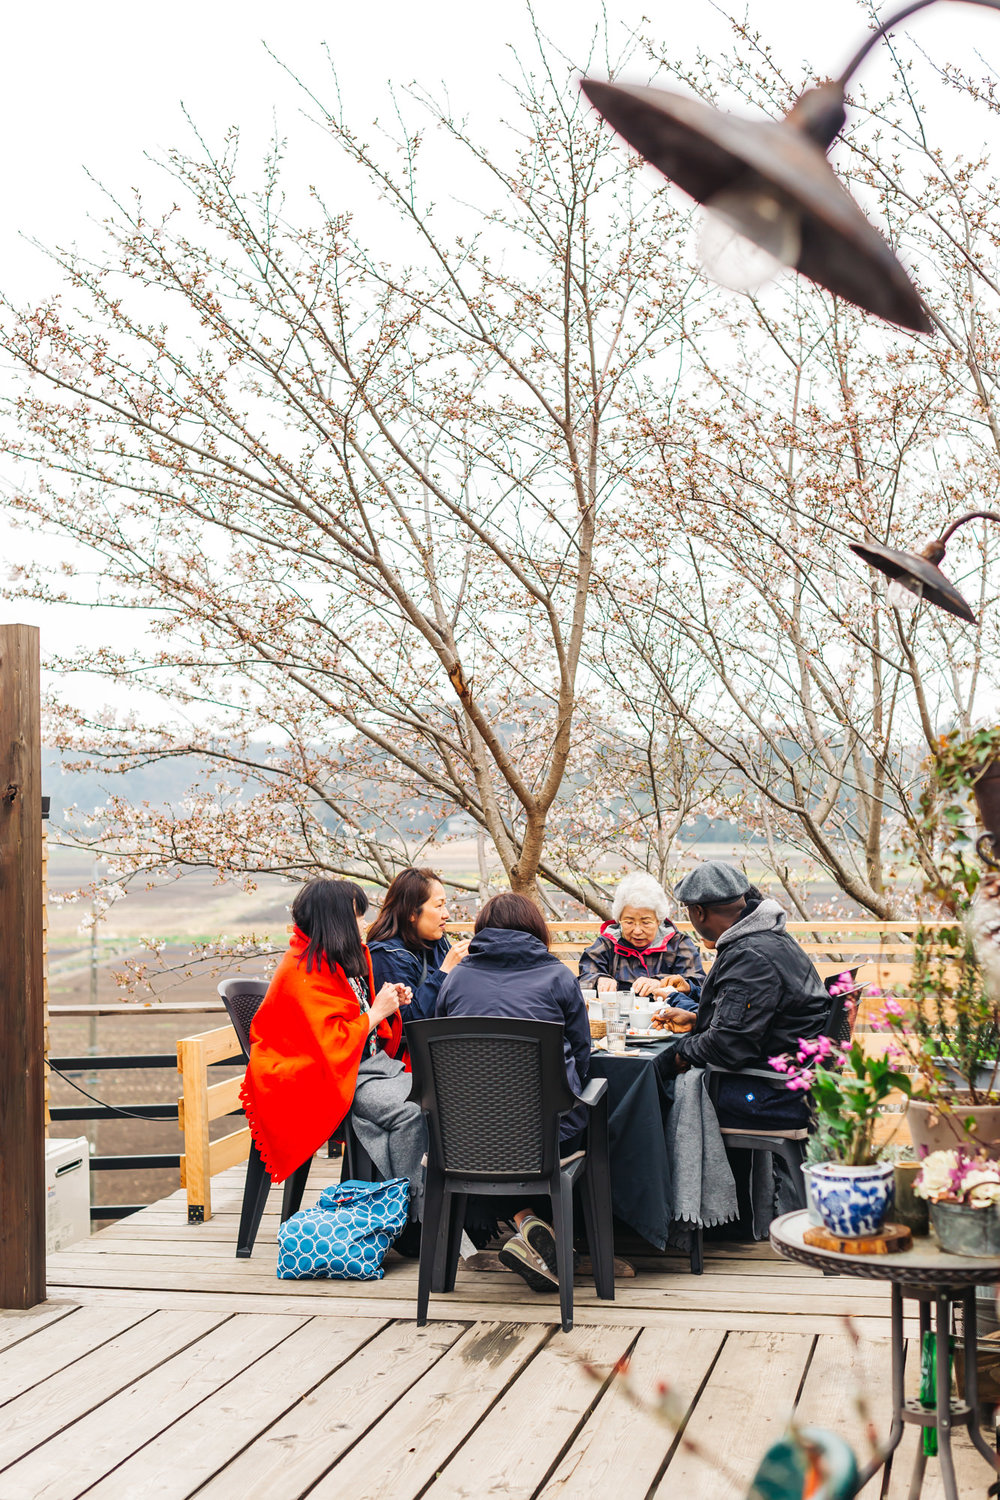 Seating under the Cherry Blossom tree